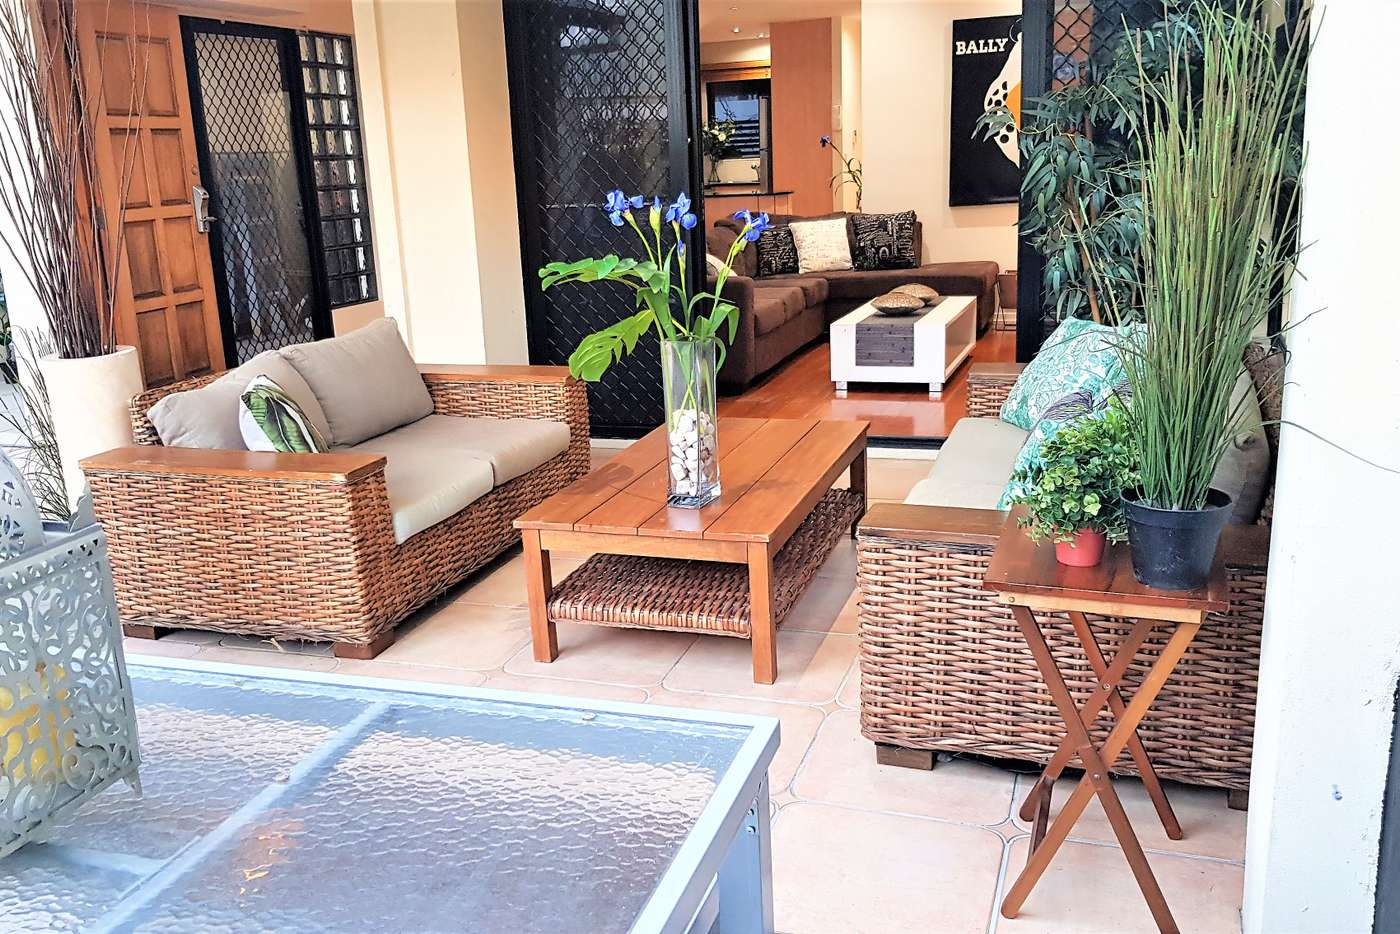 Main view of Homely townhouse listing, 3/37 Sandford Street, St Lucia QLD 4067